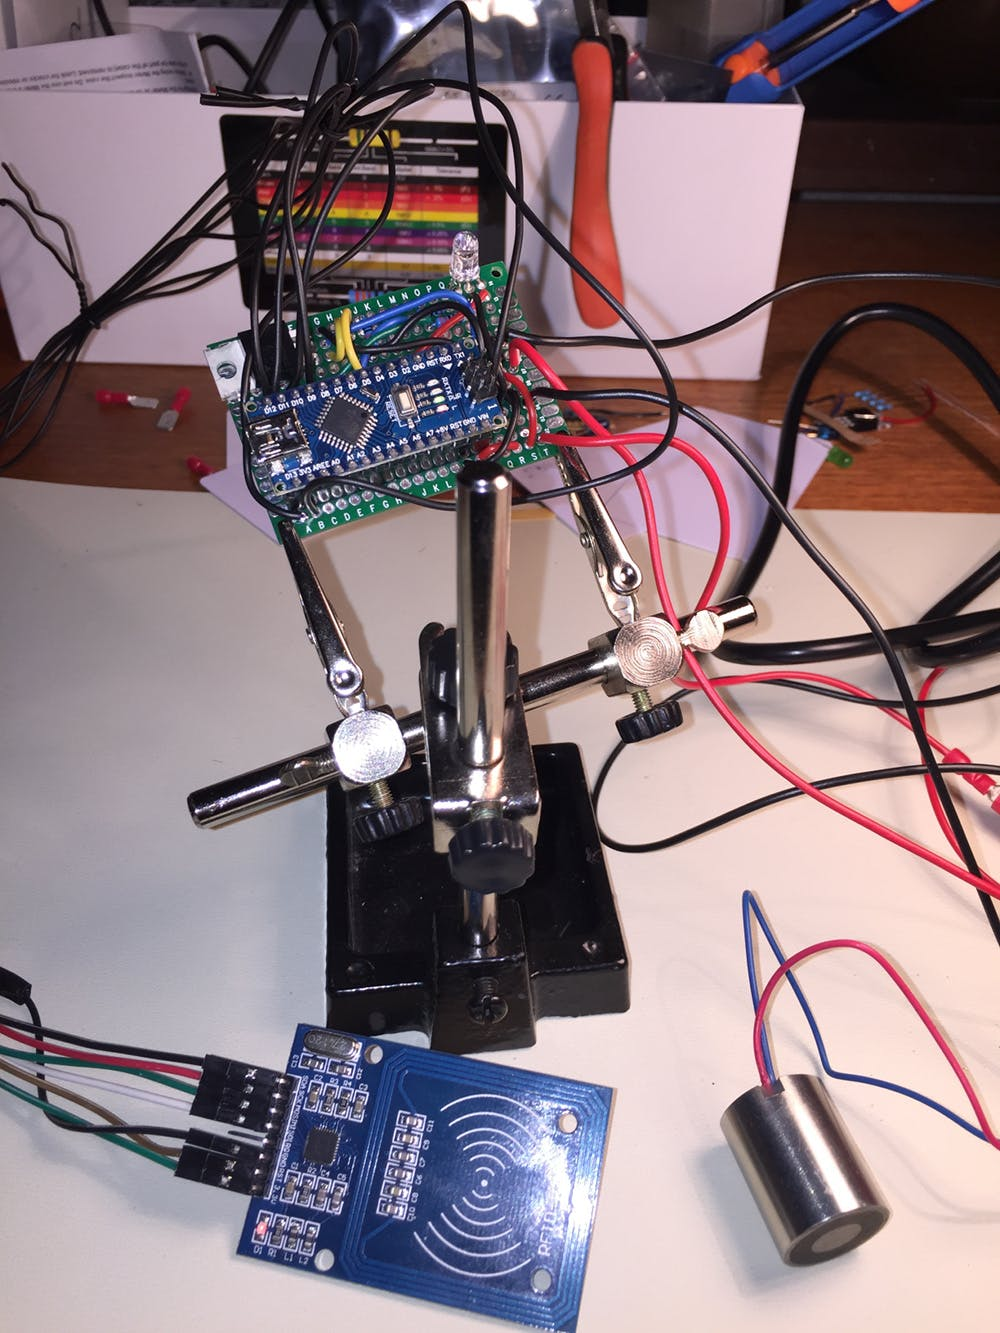 The electronics when it was mounted to the smaller board